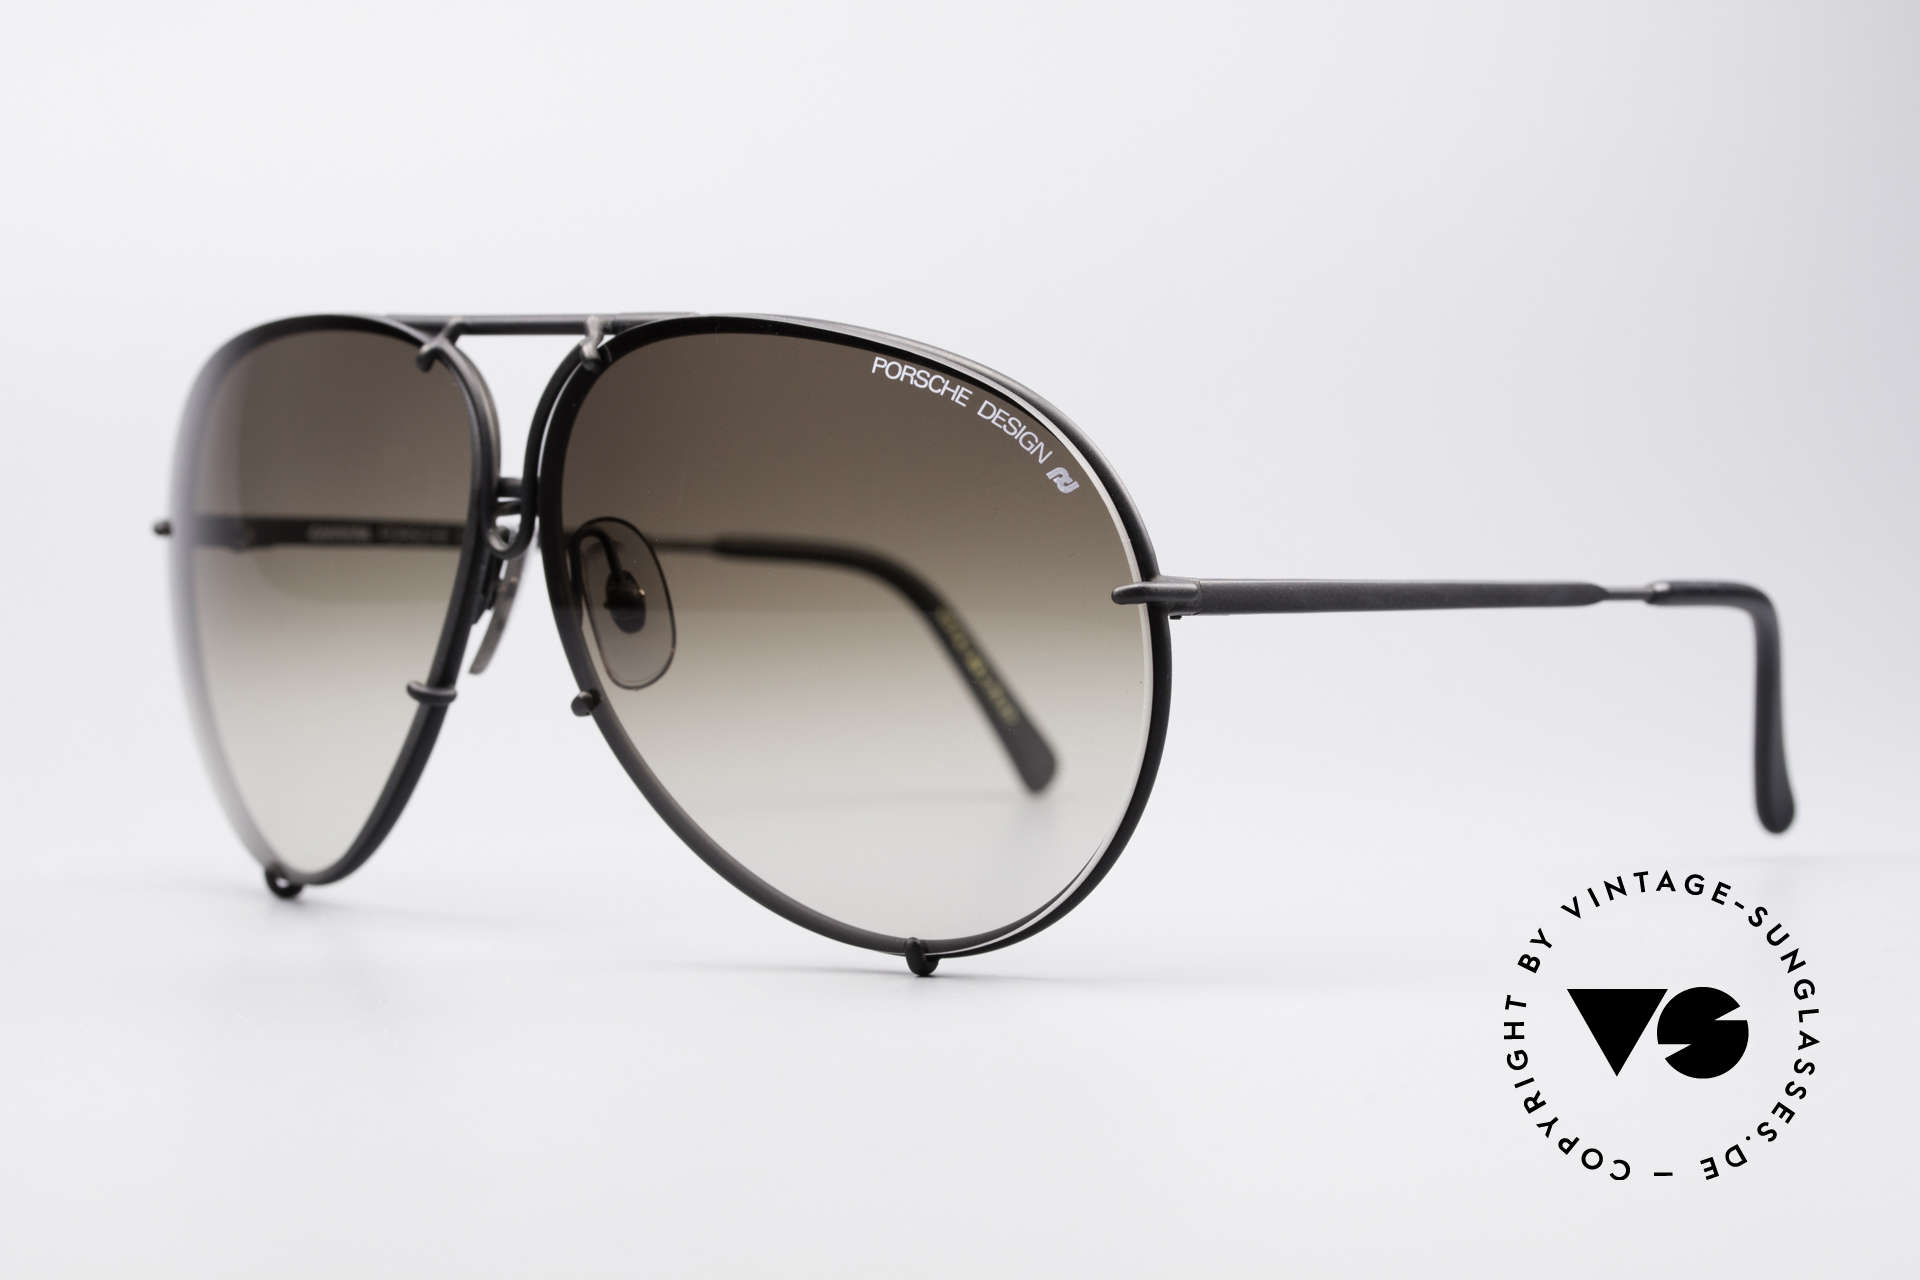 Porsche 5621 Large 80's Aviator Shades, the legend with interchangeable lenses - true vintage, Made for Men